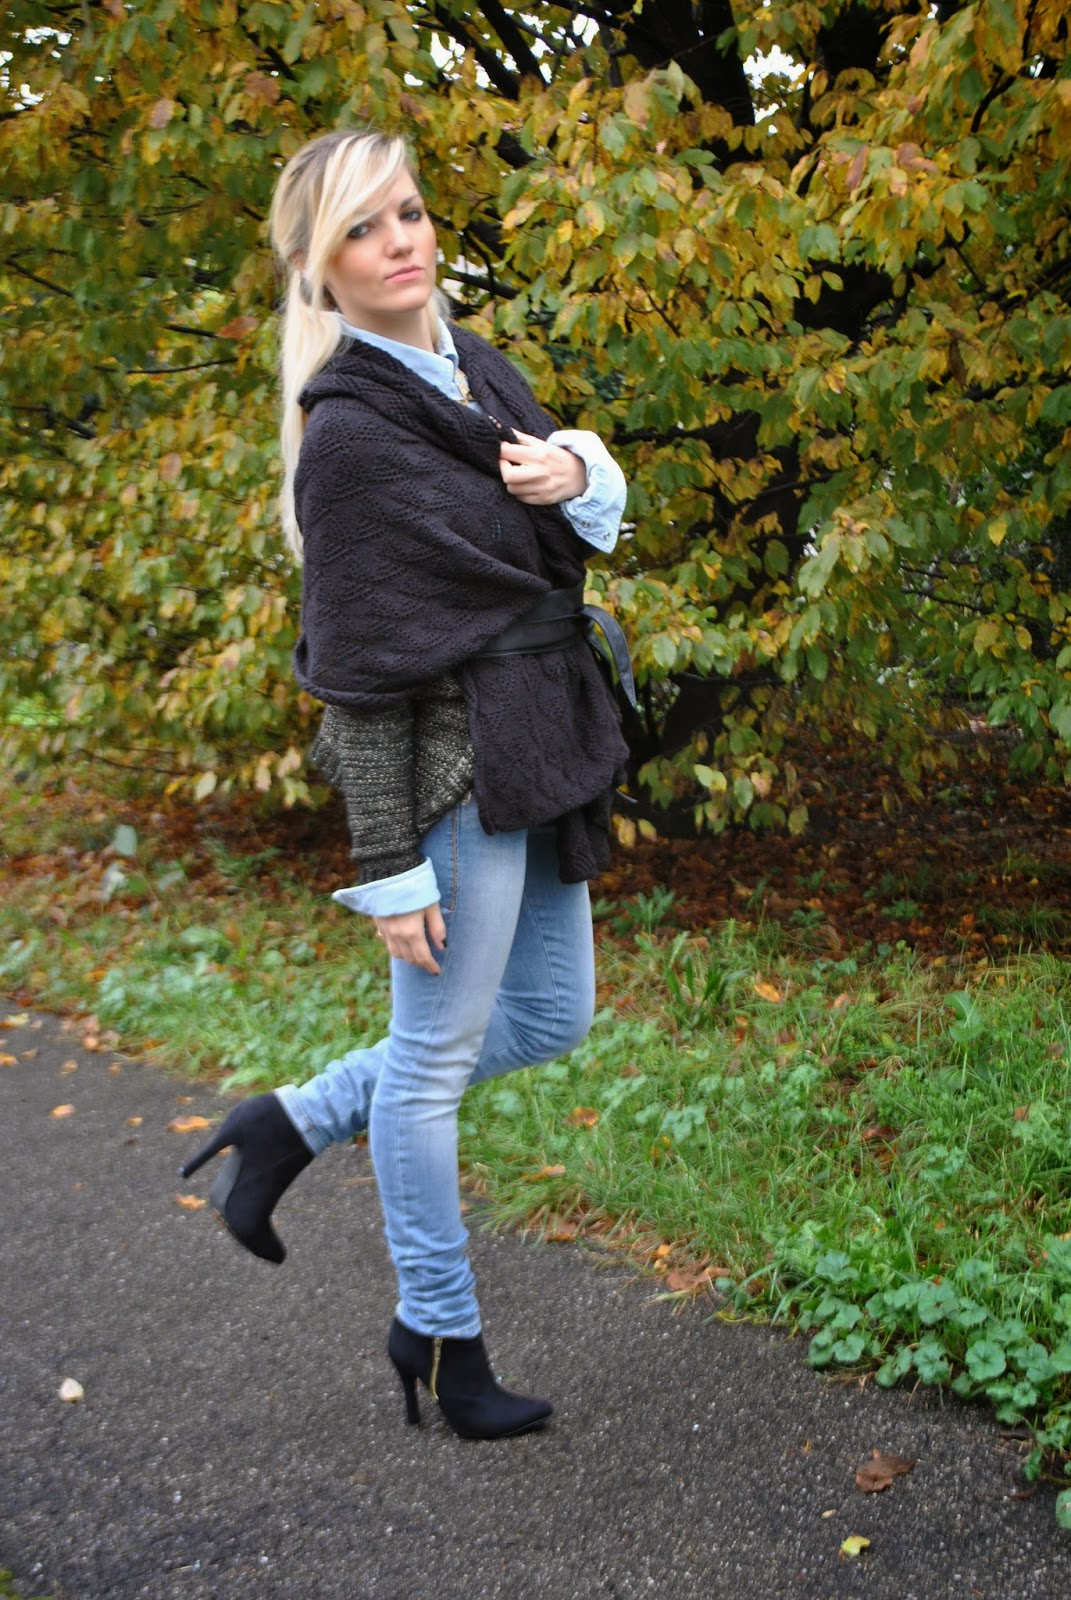 outfit outfit autunnali outfit novembre 2014 outfit casual outfit casual autunnali outfit jeans fornarina botton up camicia di jeans e mantella nera mantella nera fermata in vita con cintura fisciacca how towear cape autumnal outfit cape and jeans denim shirt fornarina jeans ankle boots fashion blog italiani fashion blogger italiane fashion bloggers italy mariafelicia magno mariafelicia magno fashion blogger colorblock by felym majique collana etnica majique majique london necklace pimkie boots italian girls ragazze bionde fashion blogger bionde blonde girls jeans e tacchi abbinamenti jeans e tacchi jeans and heels mantella nera black cape jeans heels and black cape jeans tacchi e mantella